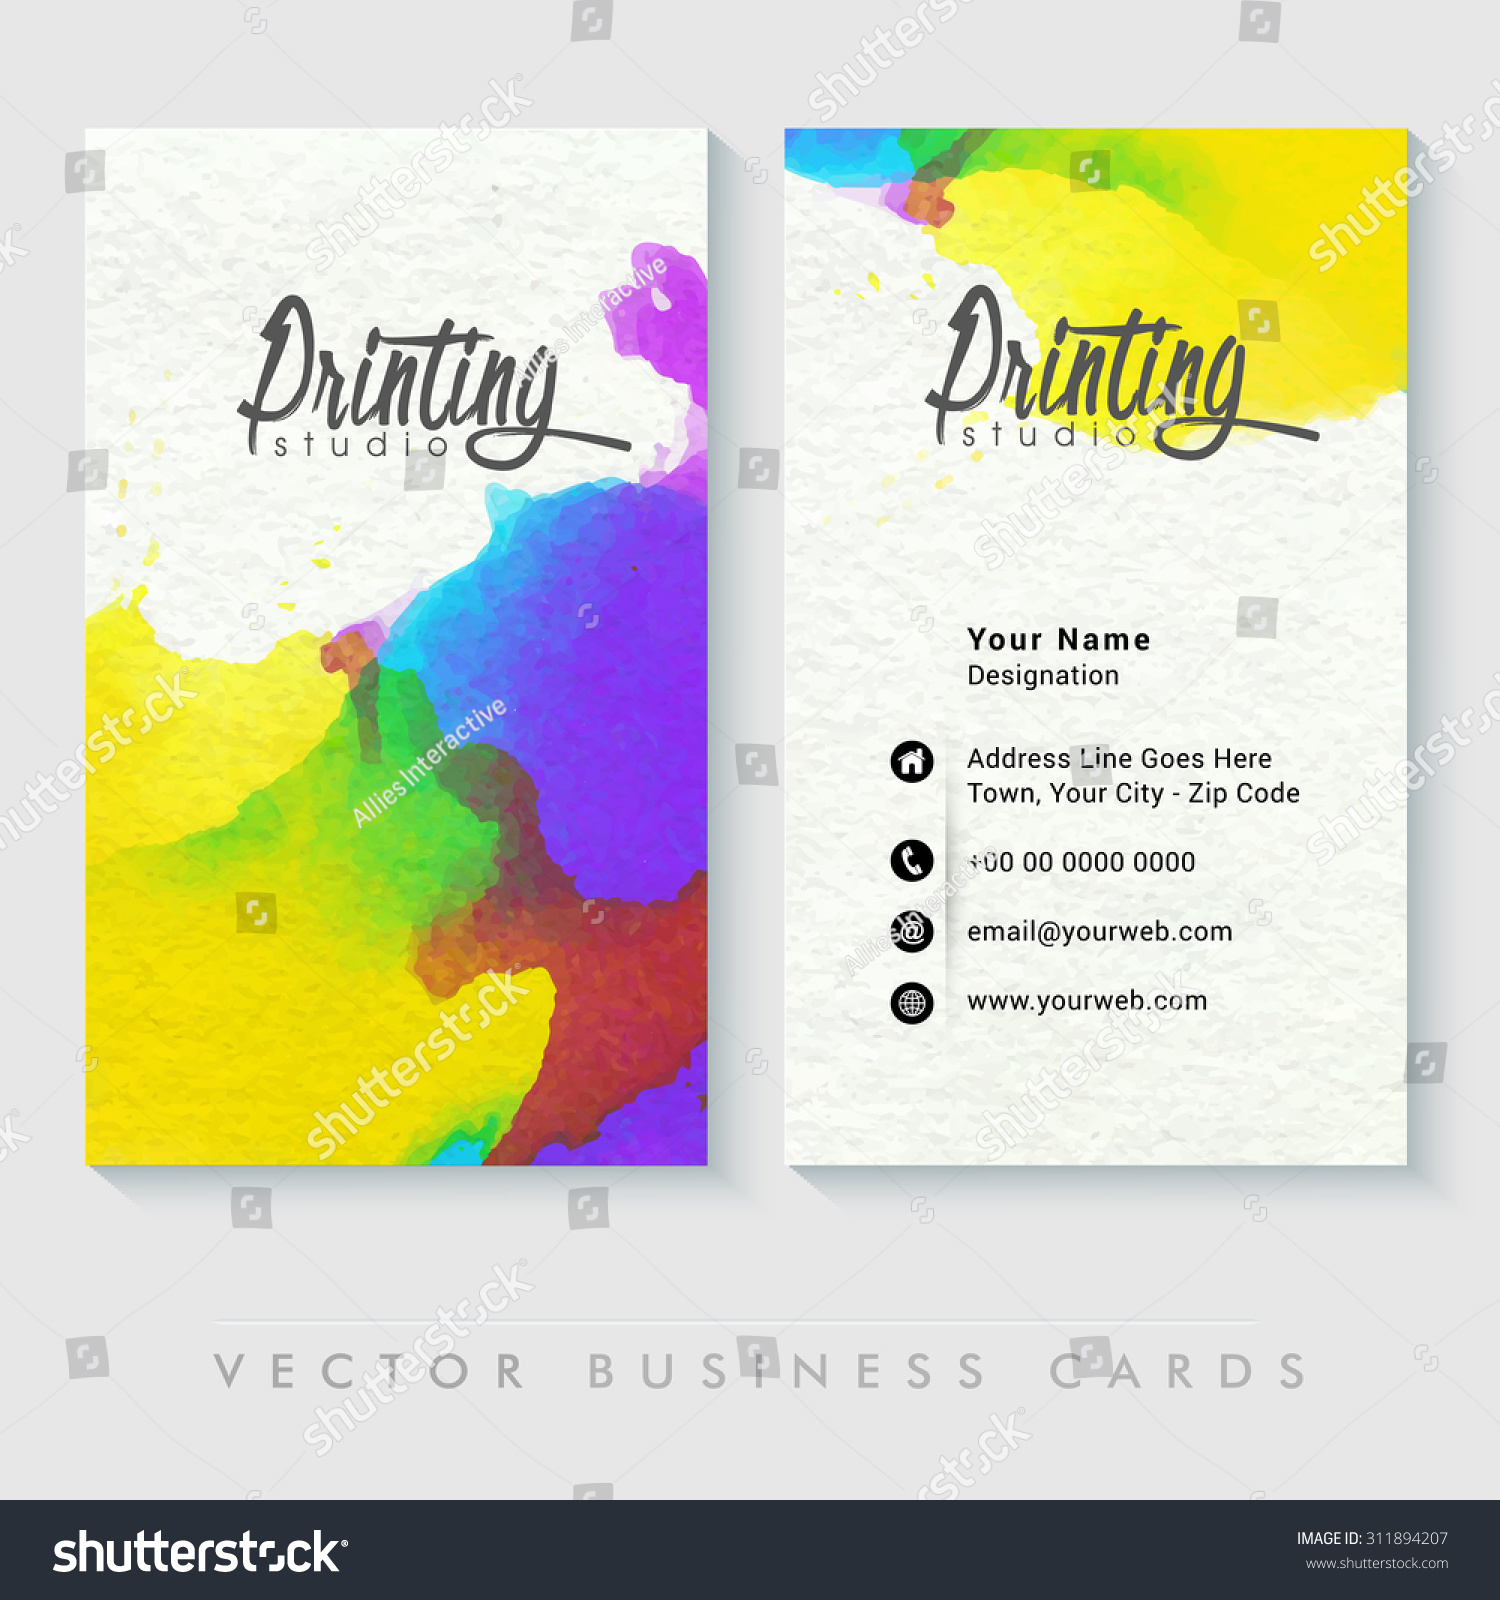 Colorful Professional Business Card Design Creative Stock Vector ...